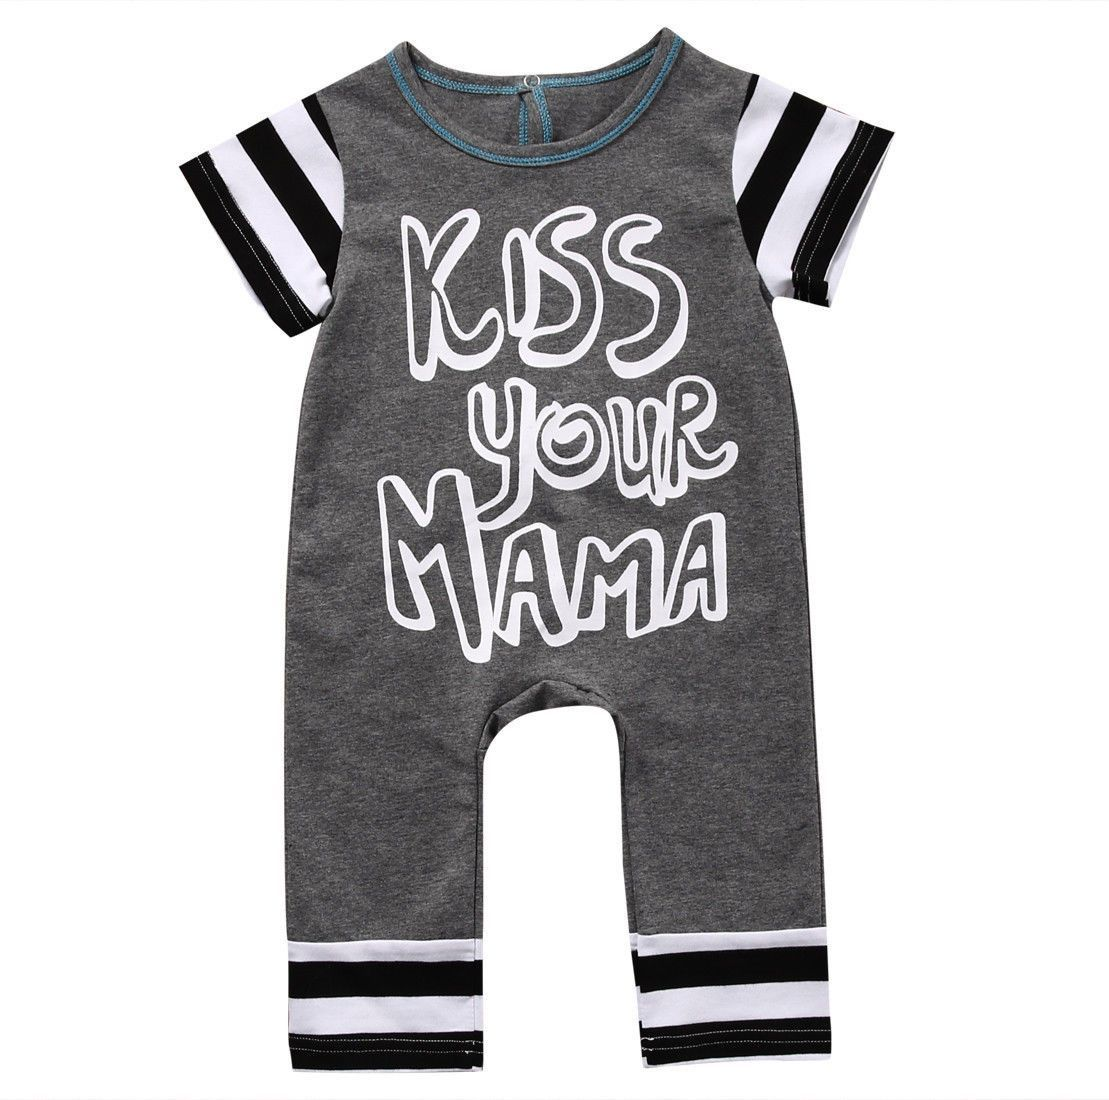 f3c2ad57f04f Baby Girl - Romper - Short Sleeve - Kiss Your Mama Print - Grey Free  Shipping! Please Allow 2-4 weeks for delivery.